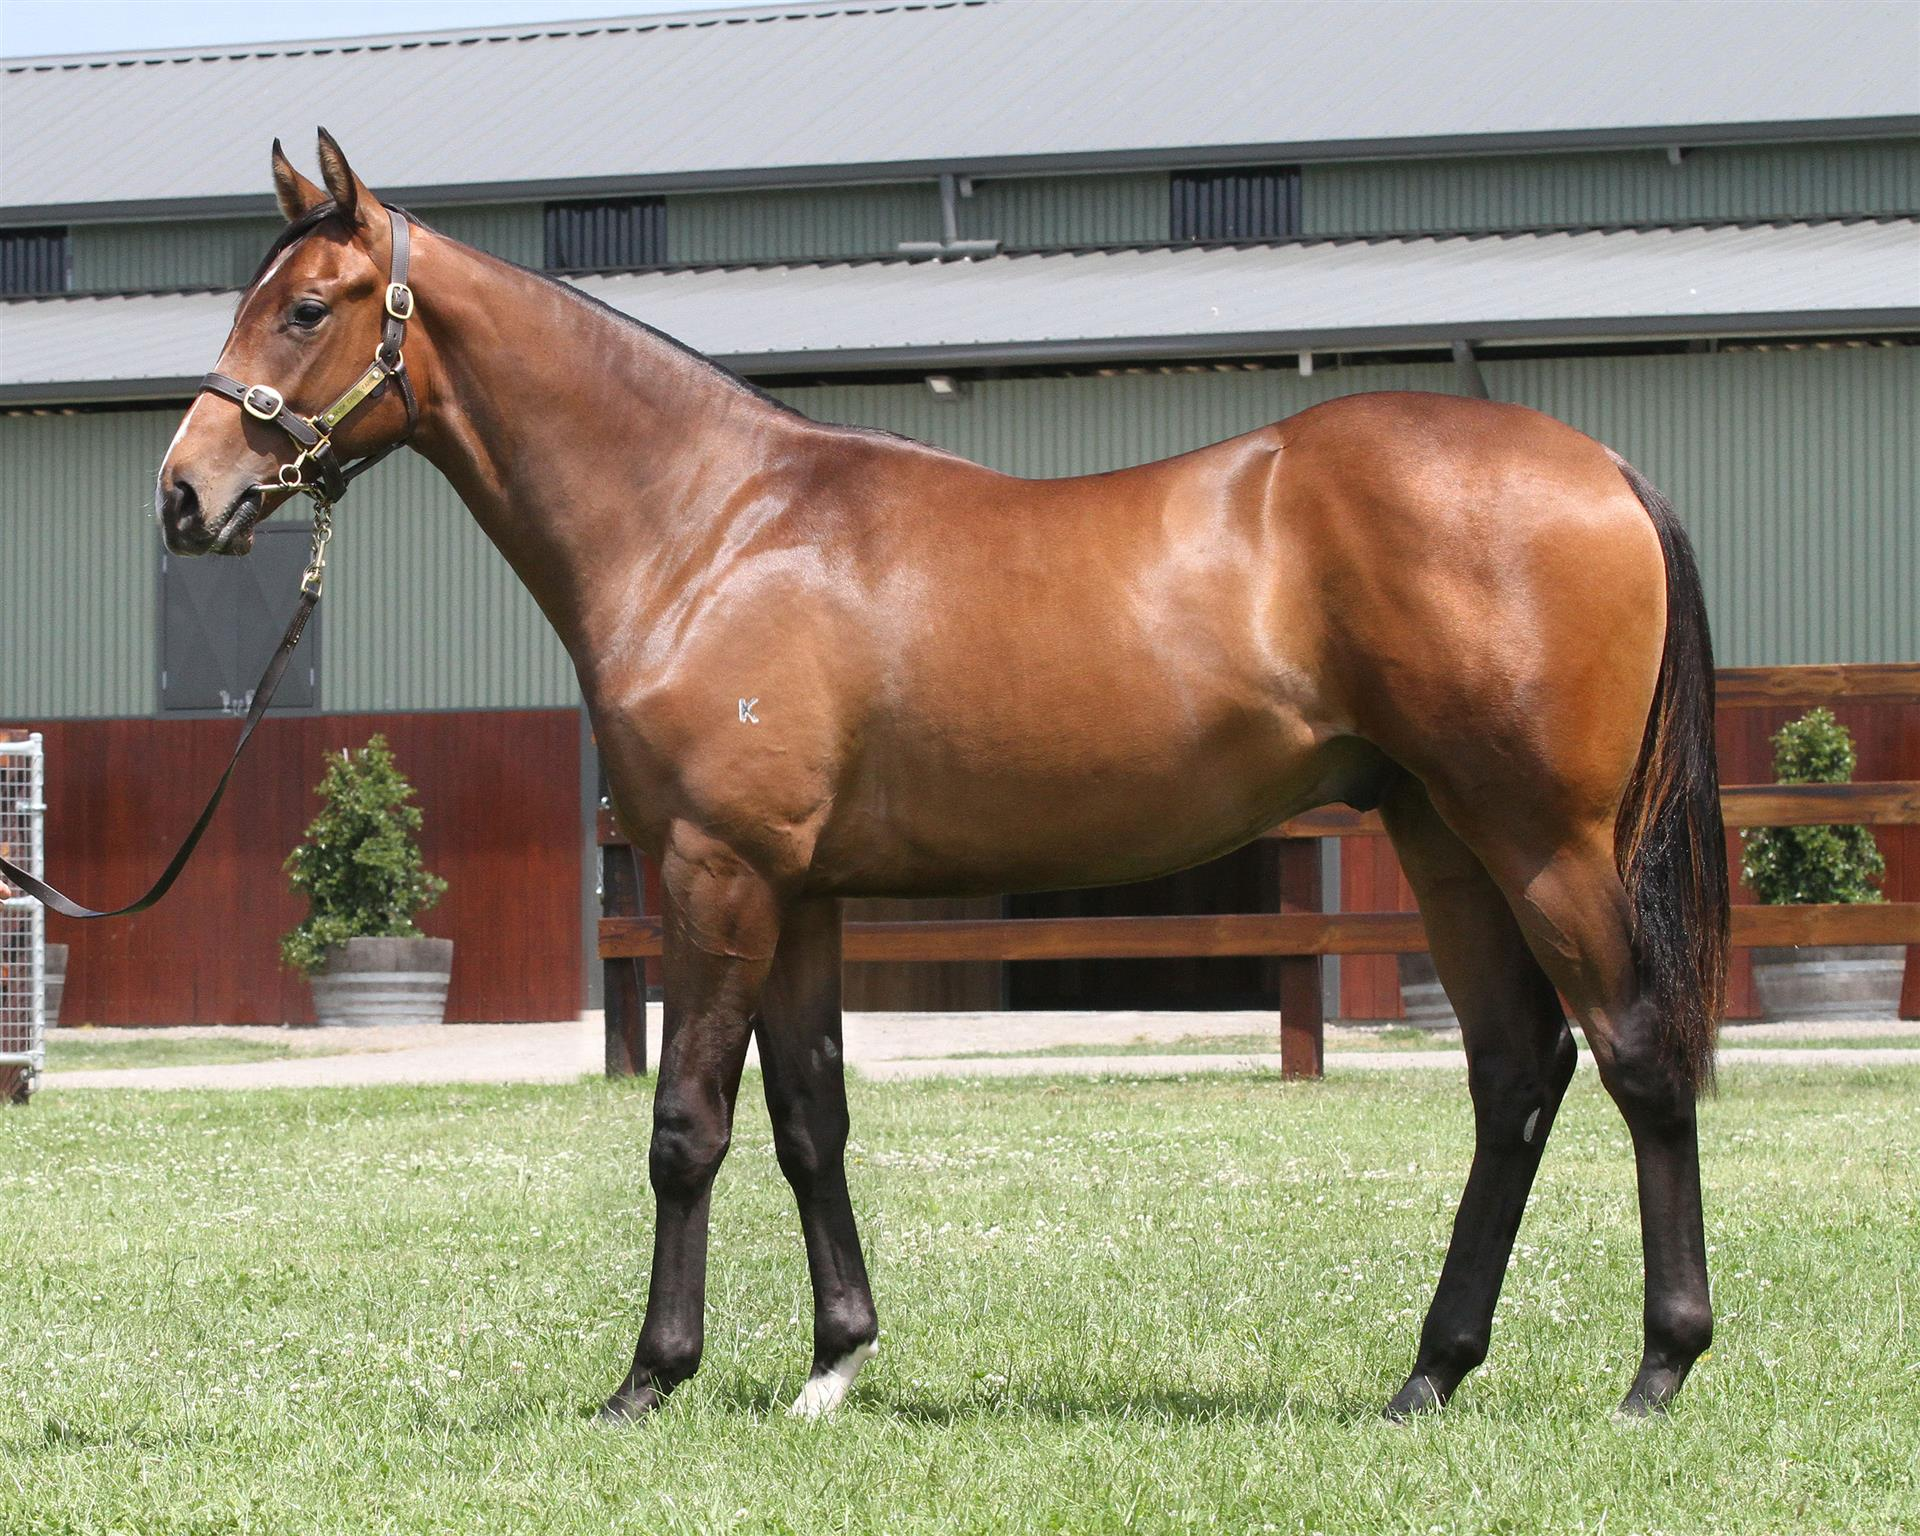 Lot 62 Magic Millions Gold Coast - Bel Esprit x Amen Ruby